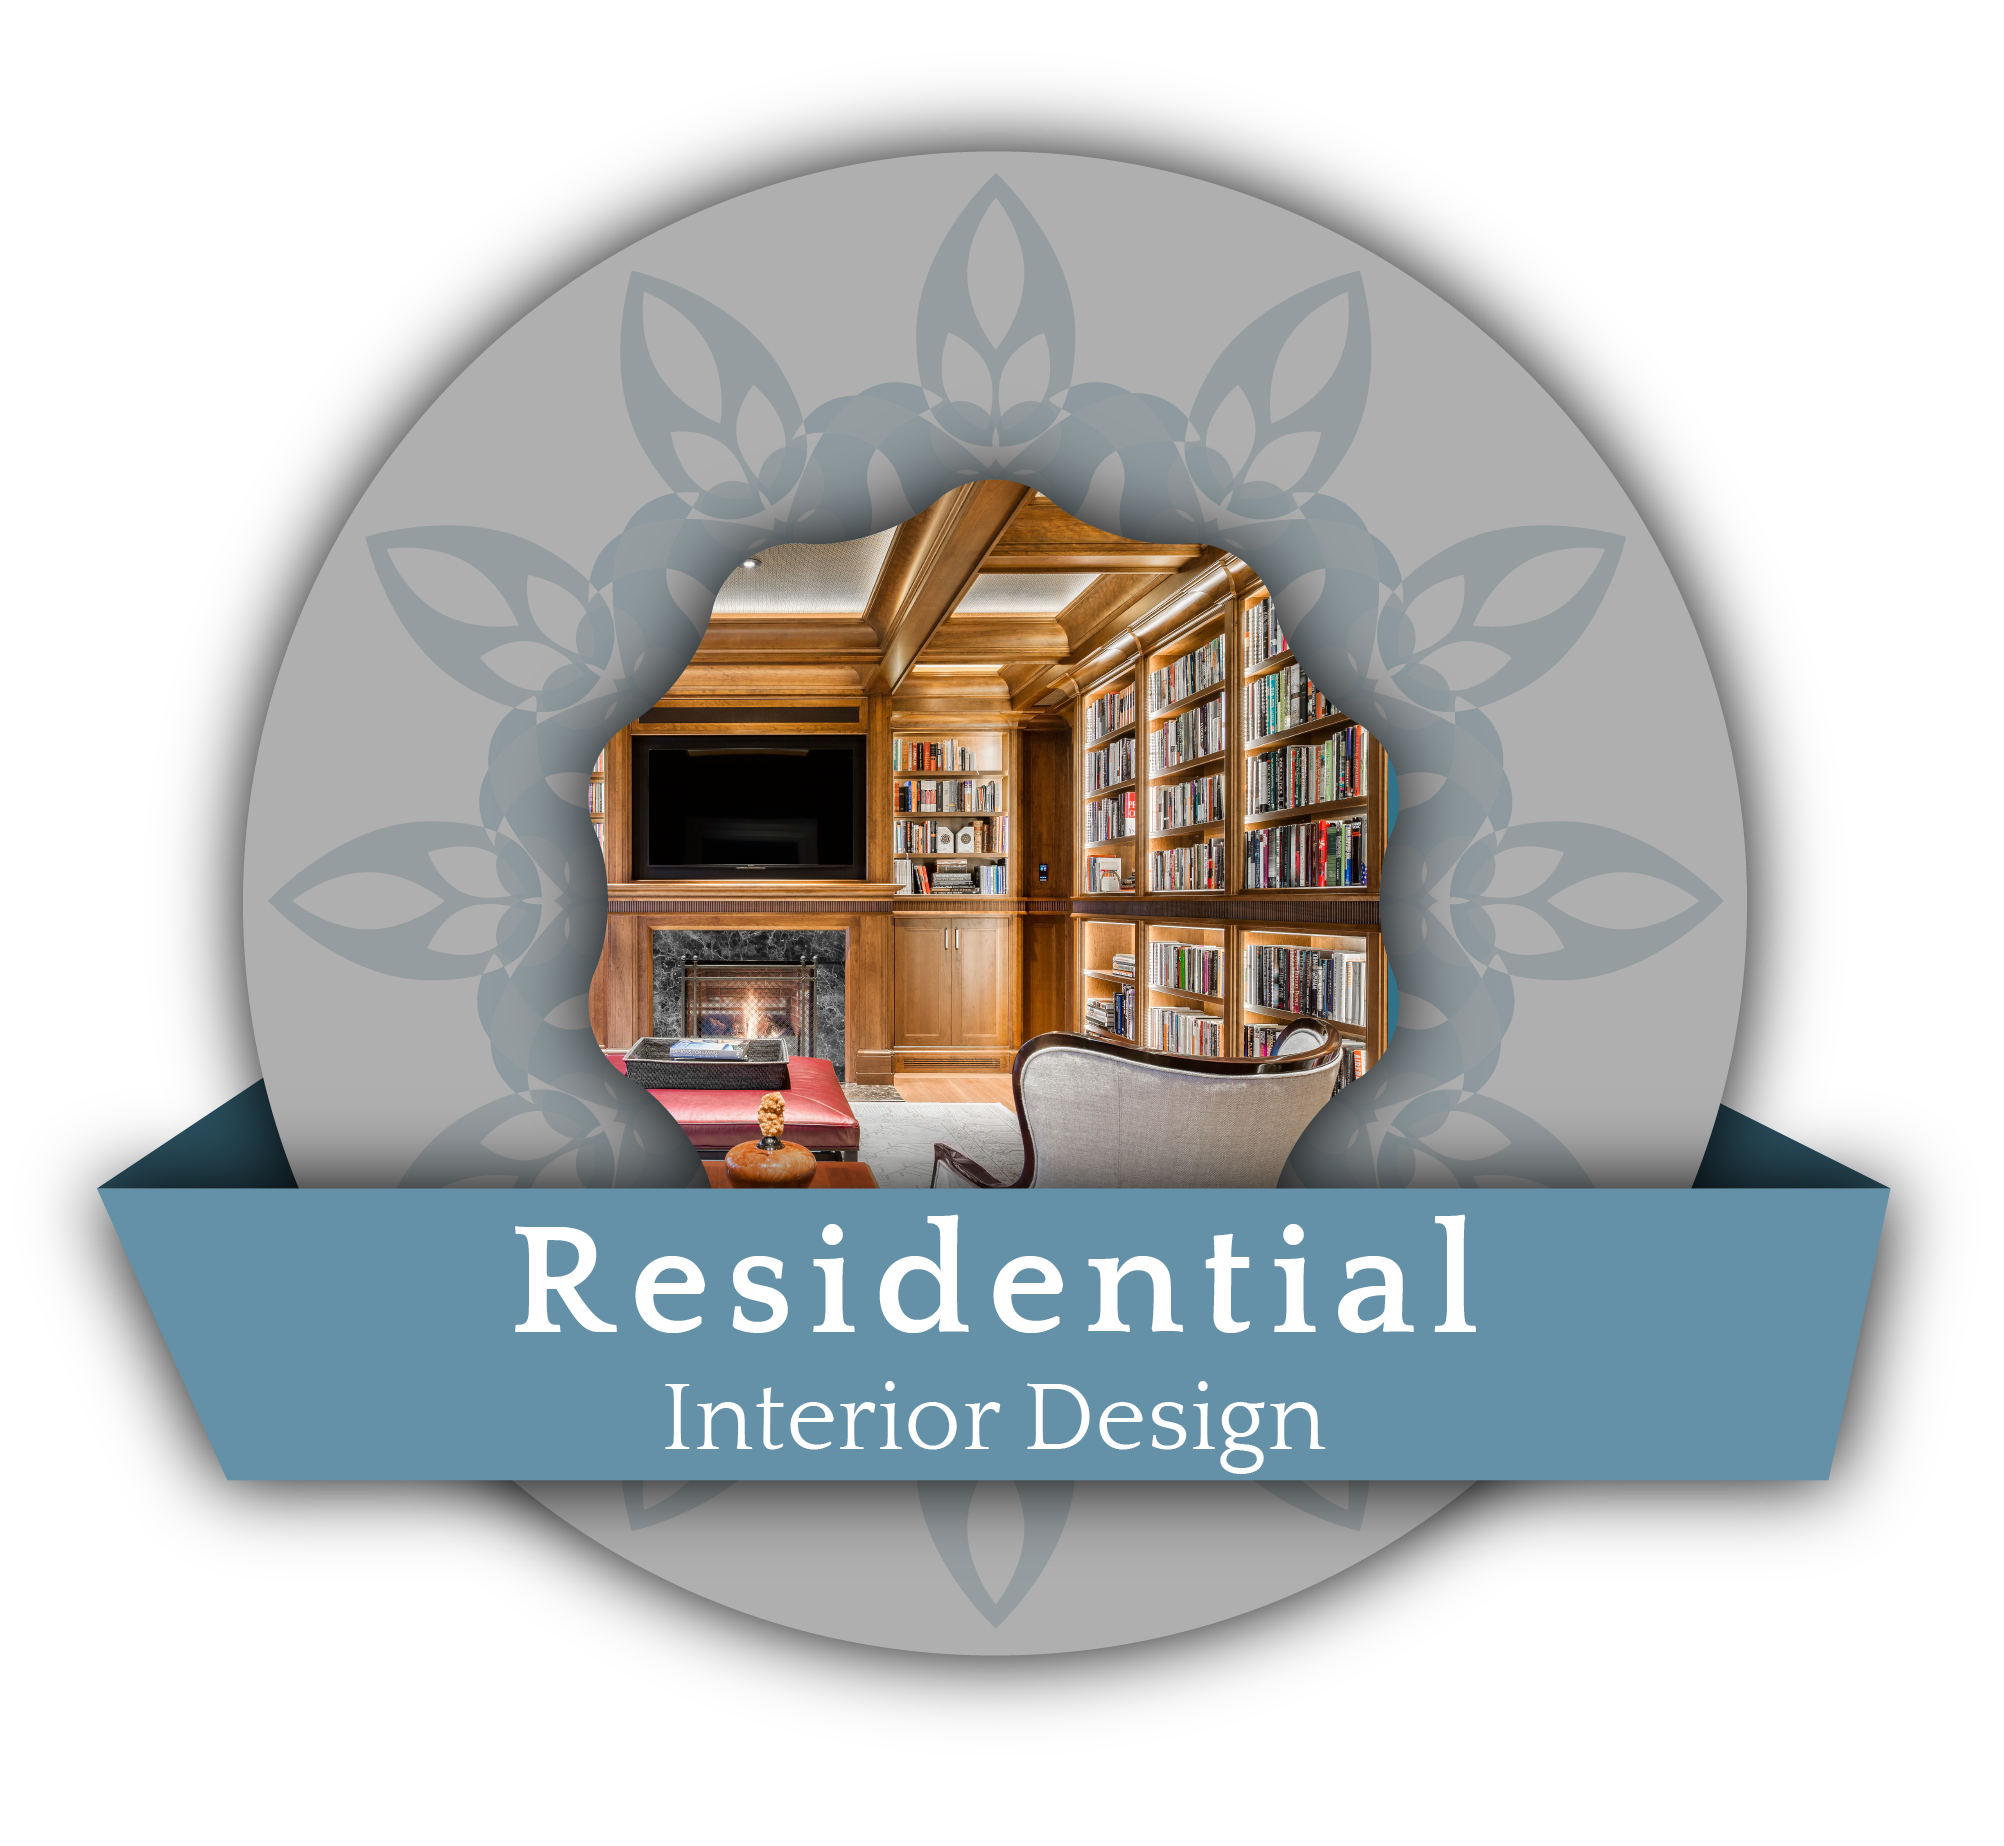 Award Winning Interior Design Services Sharon Staley Interiors